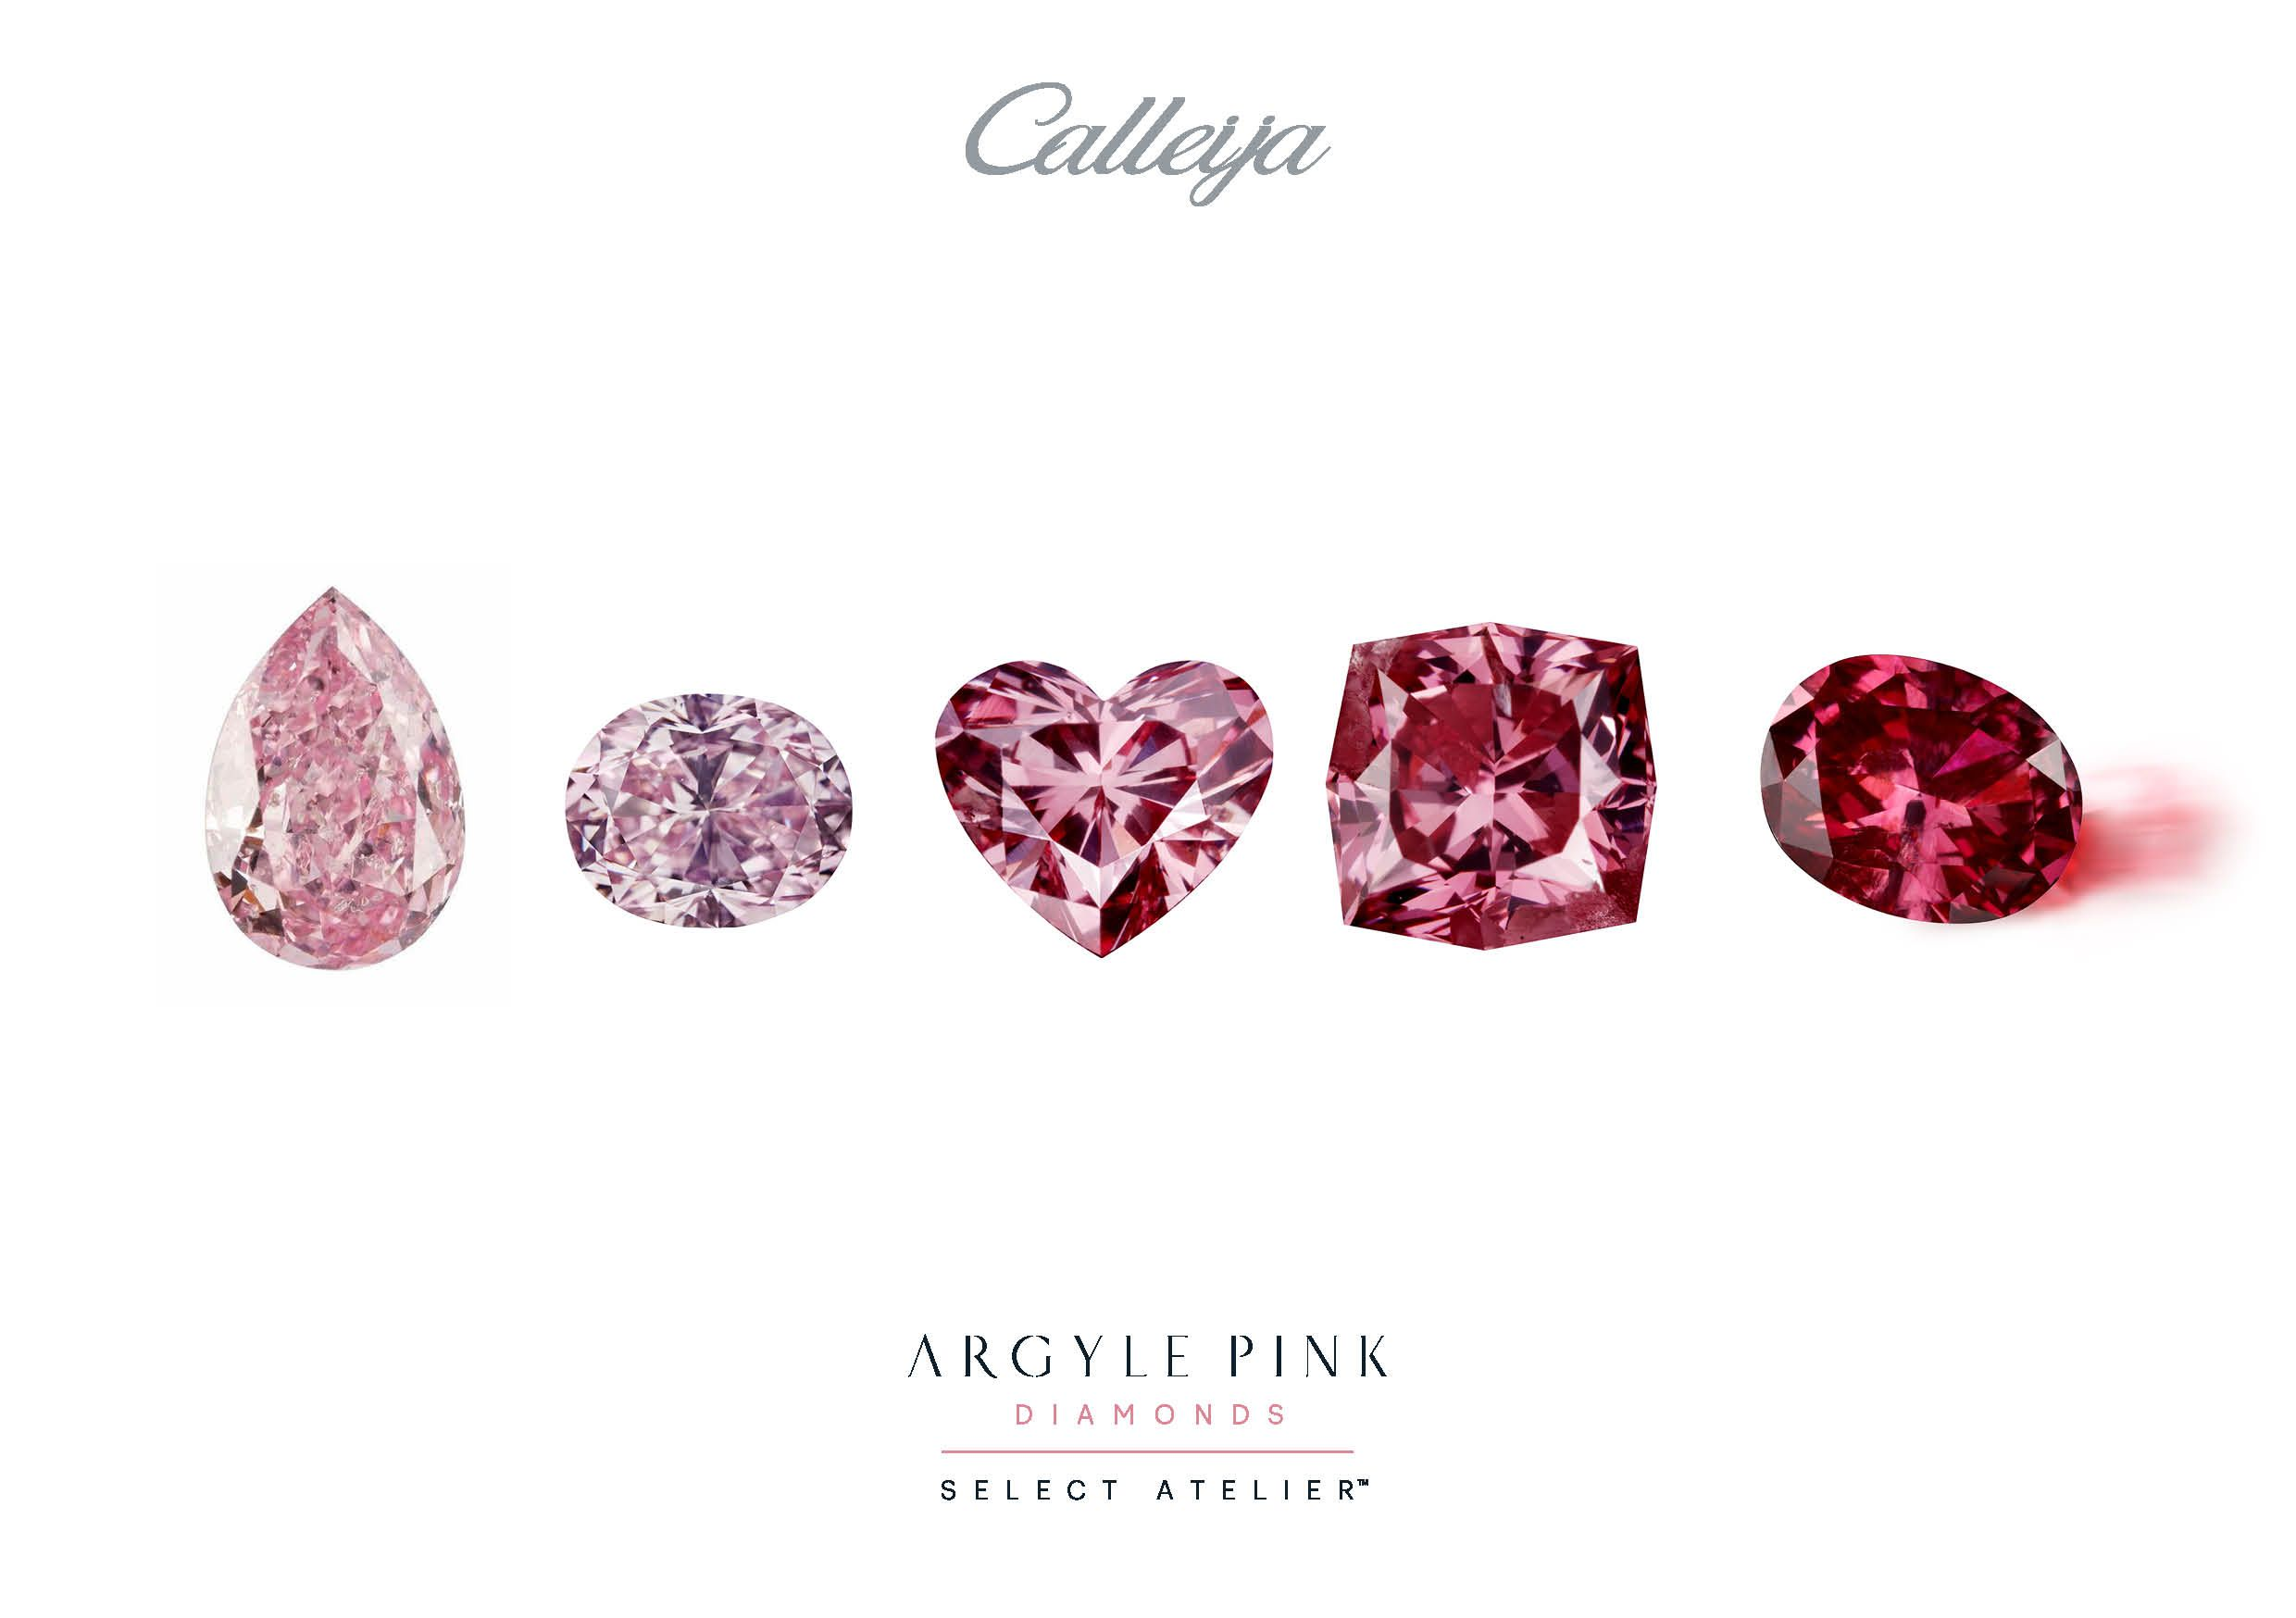 reveal diamonds only up pin chart diamond do close colour hidden when pink their depth seen